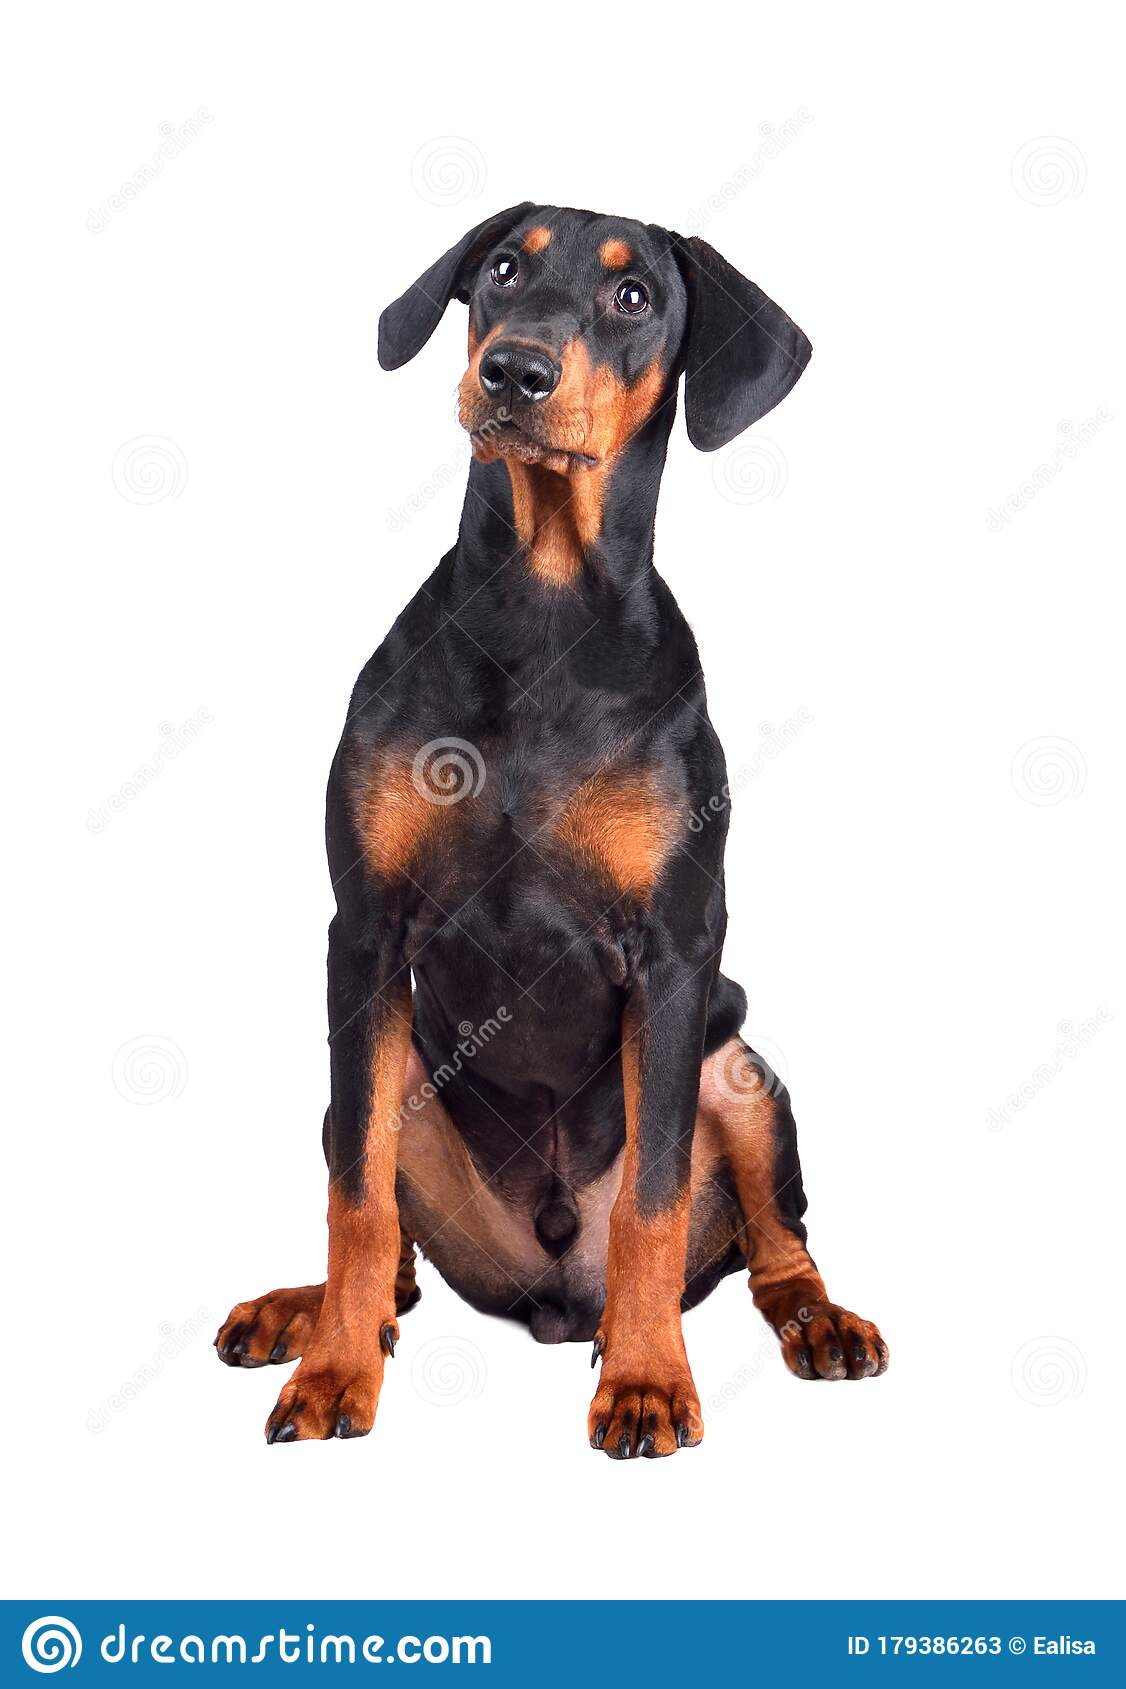 Doberman Pinscher Puppy Stock Image Image Of Puppy 179386263